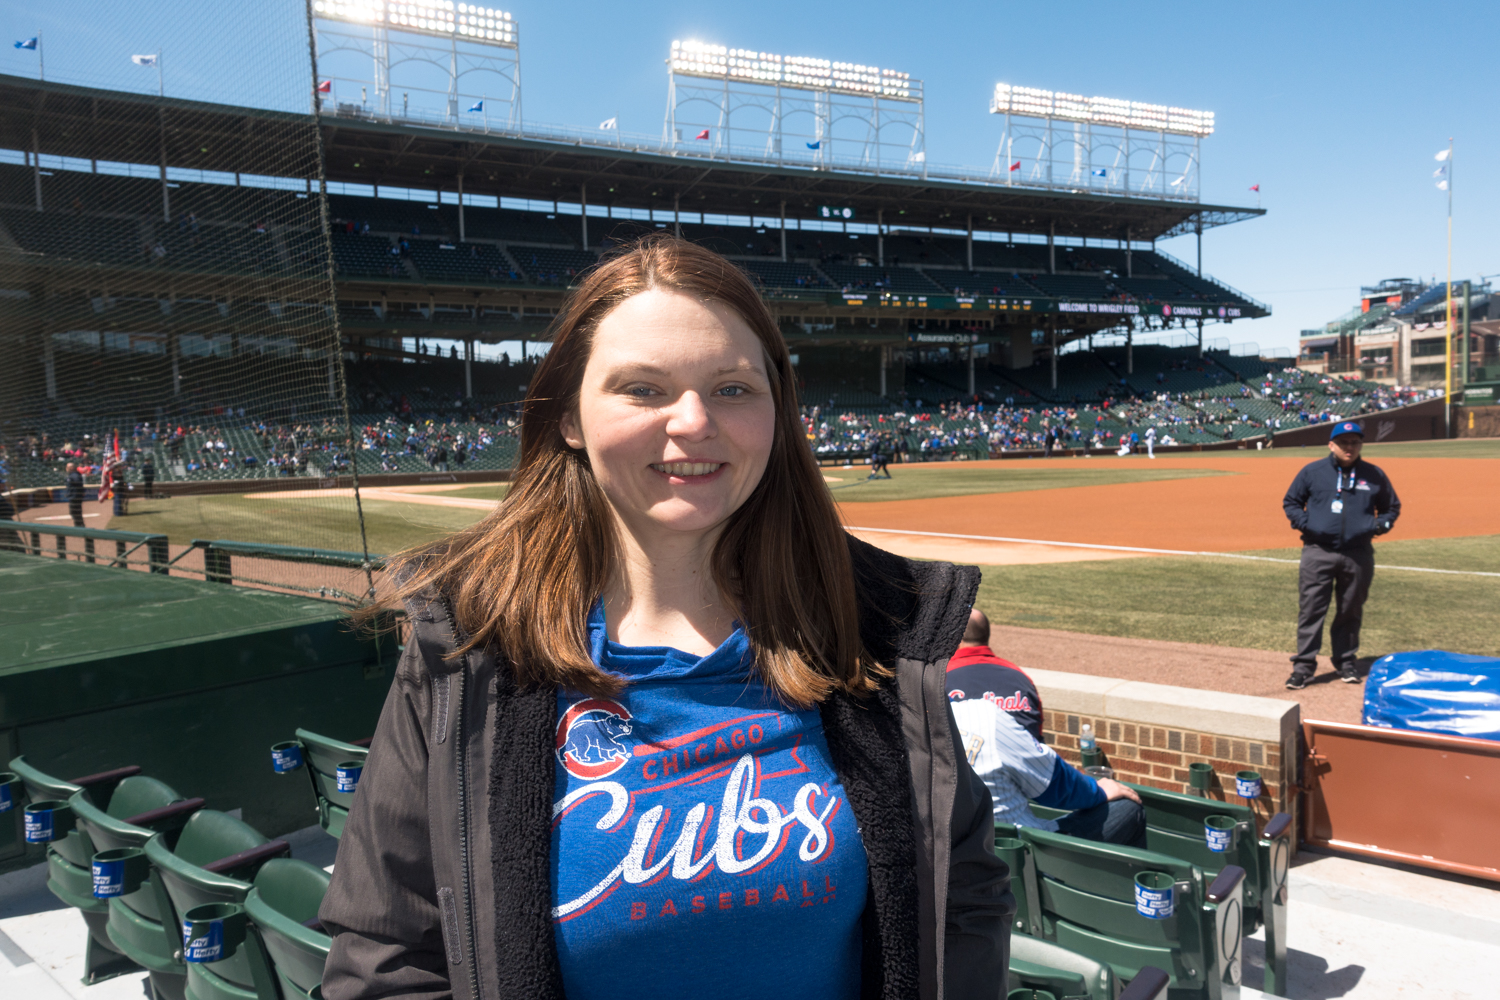 Travel Guide to Wrigleyville in Chicago: Tips for seeing the Cubs play at Wrigley Field